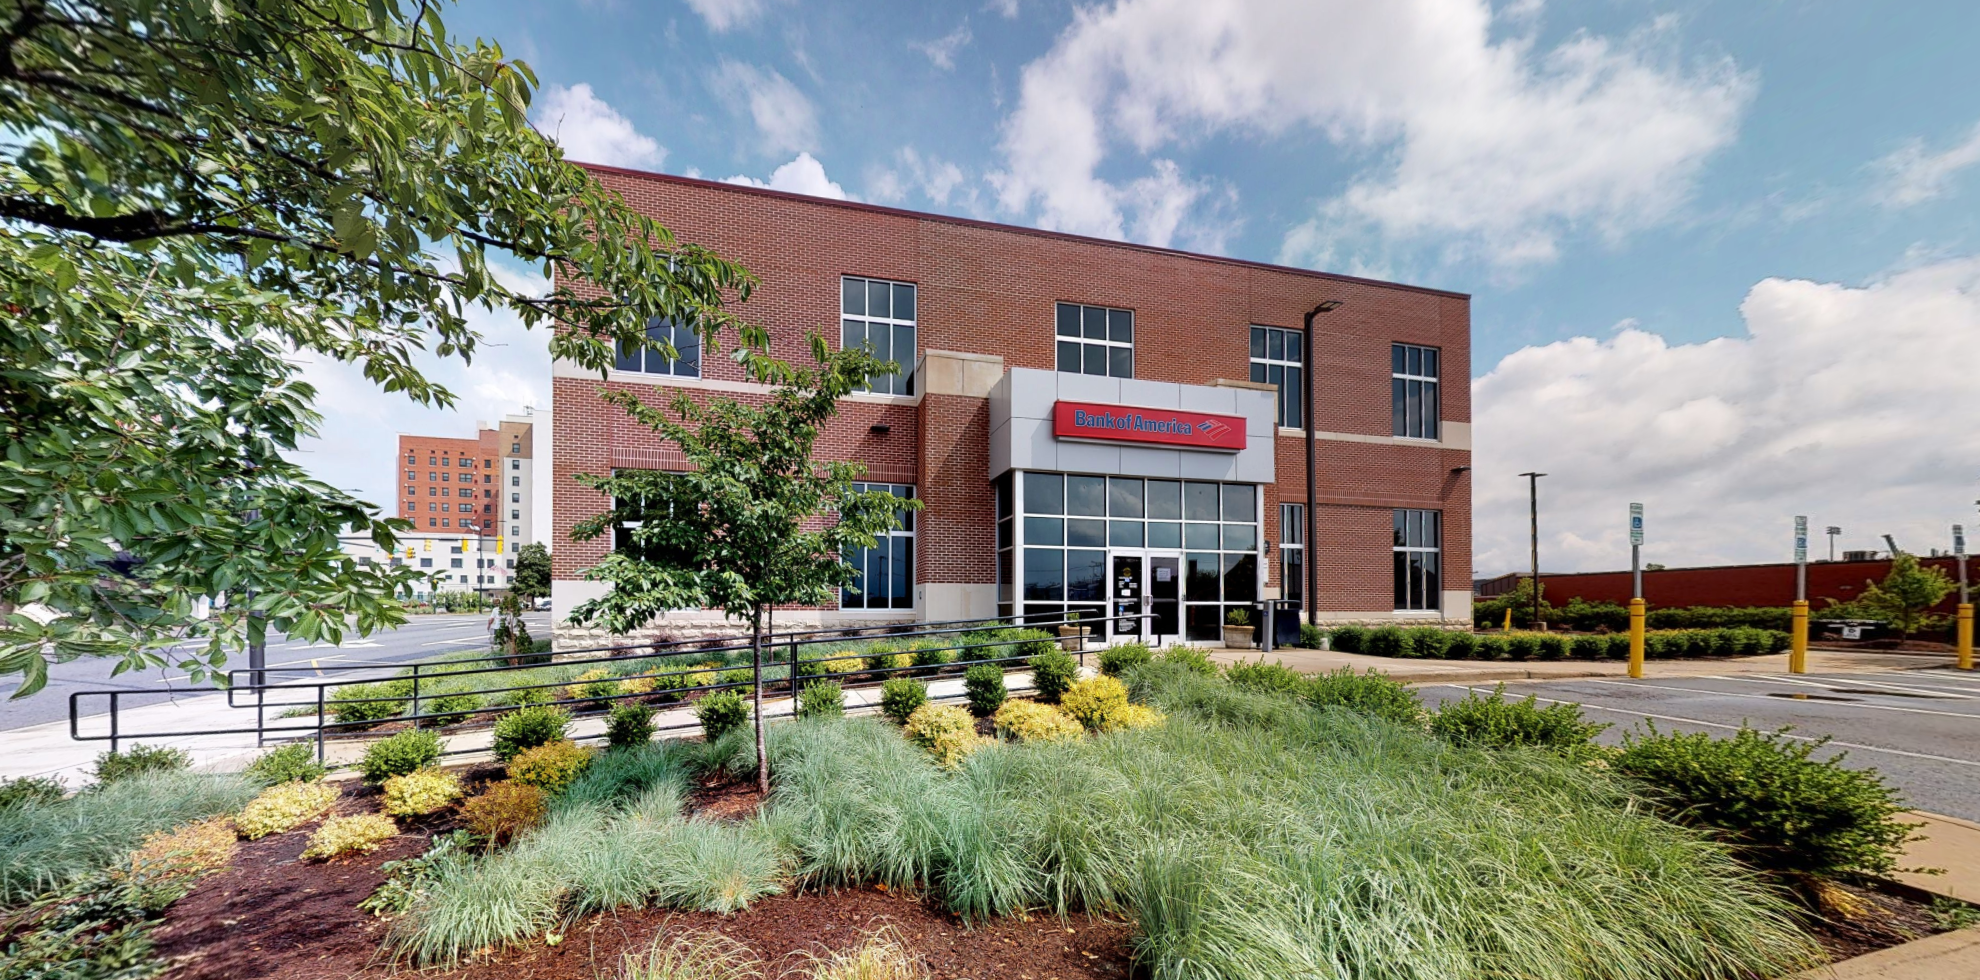 Bank of America financial center with drive-thru ATM | 501 N Main St, High Point, NC 27260